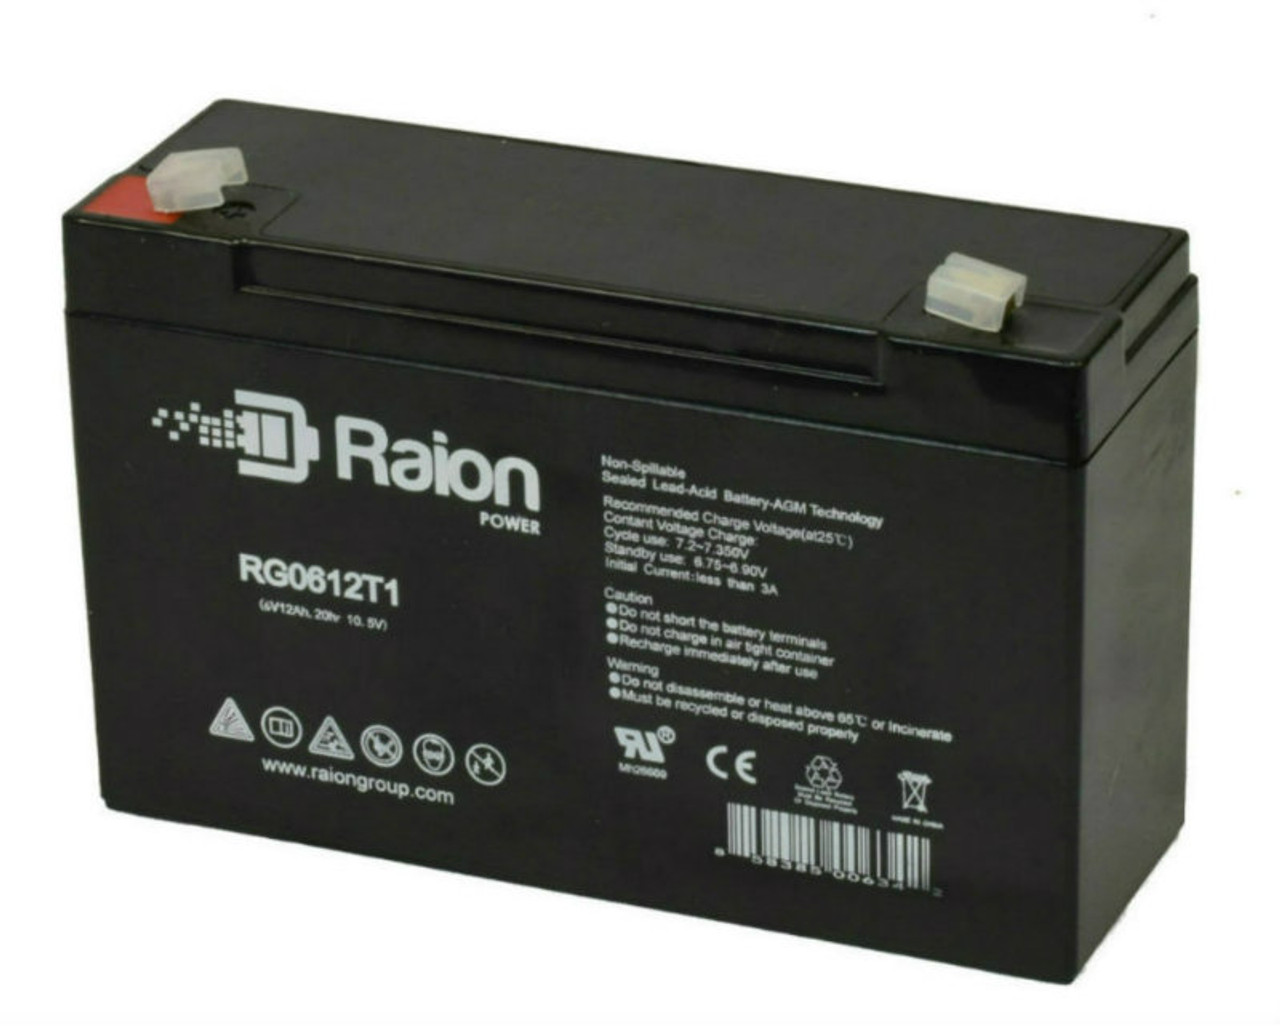 Raion Power RG06120T1 Replacement Battery Pack for Dynaray DR7417S emergency light